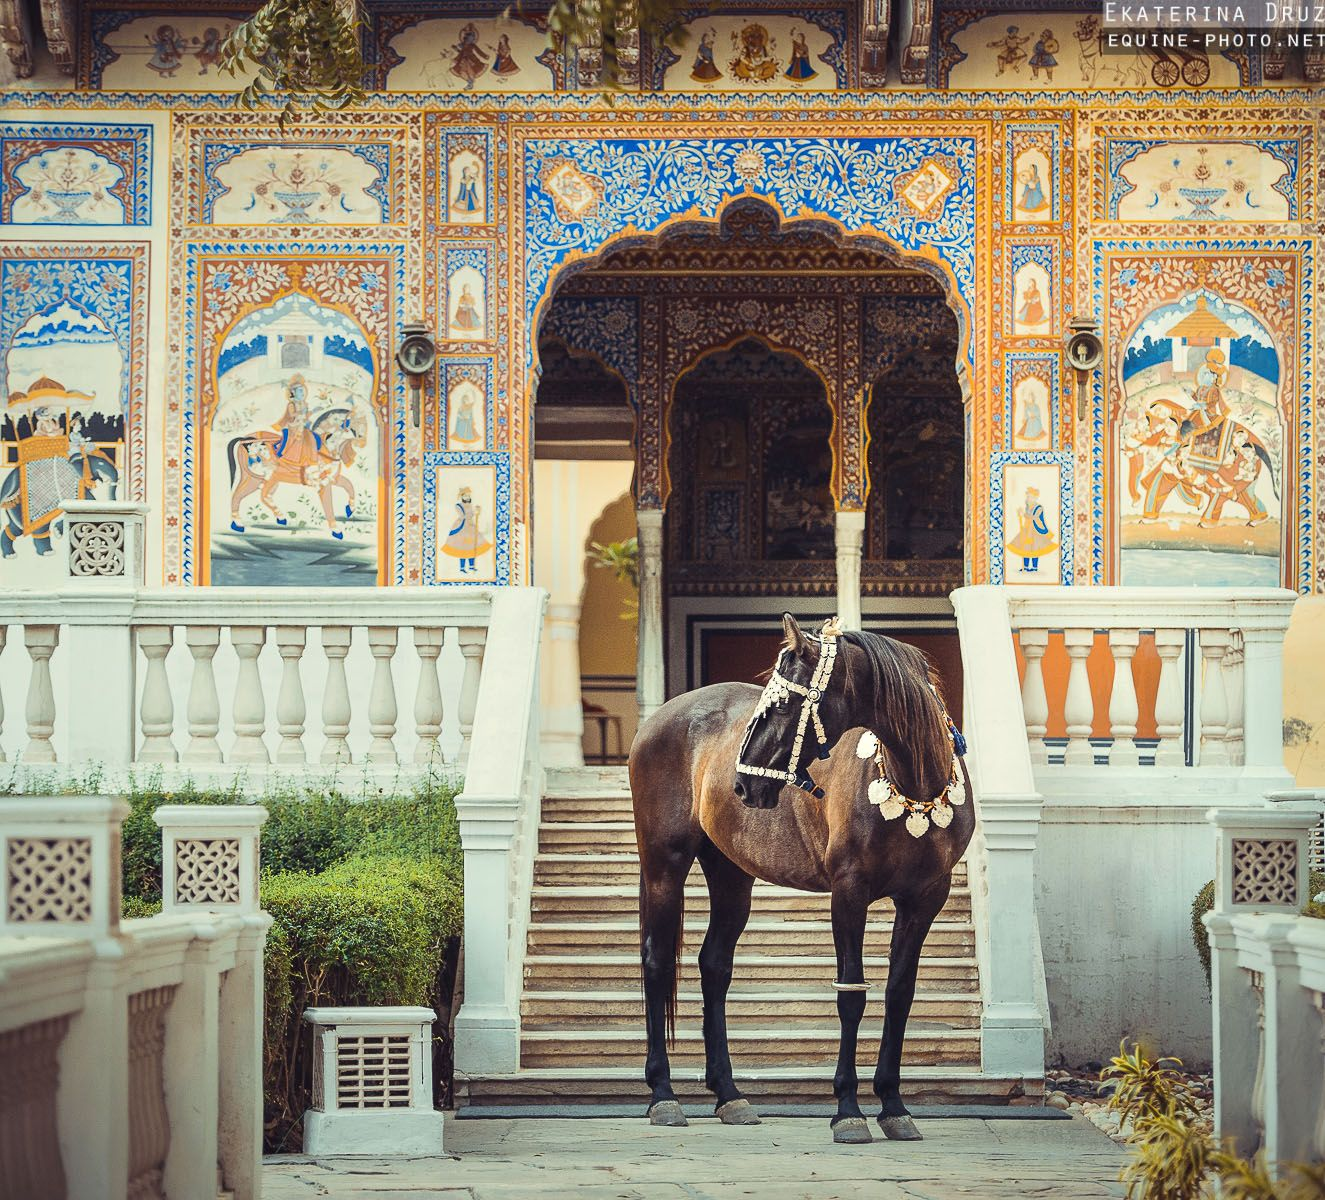 Indian horse breed Marwari, photographed in India by Ekaterina Druz Equine Photography